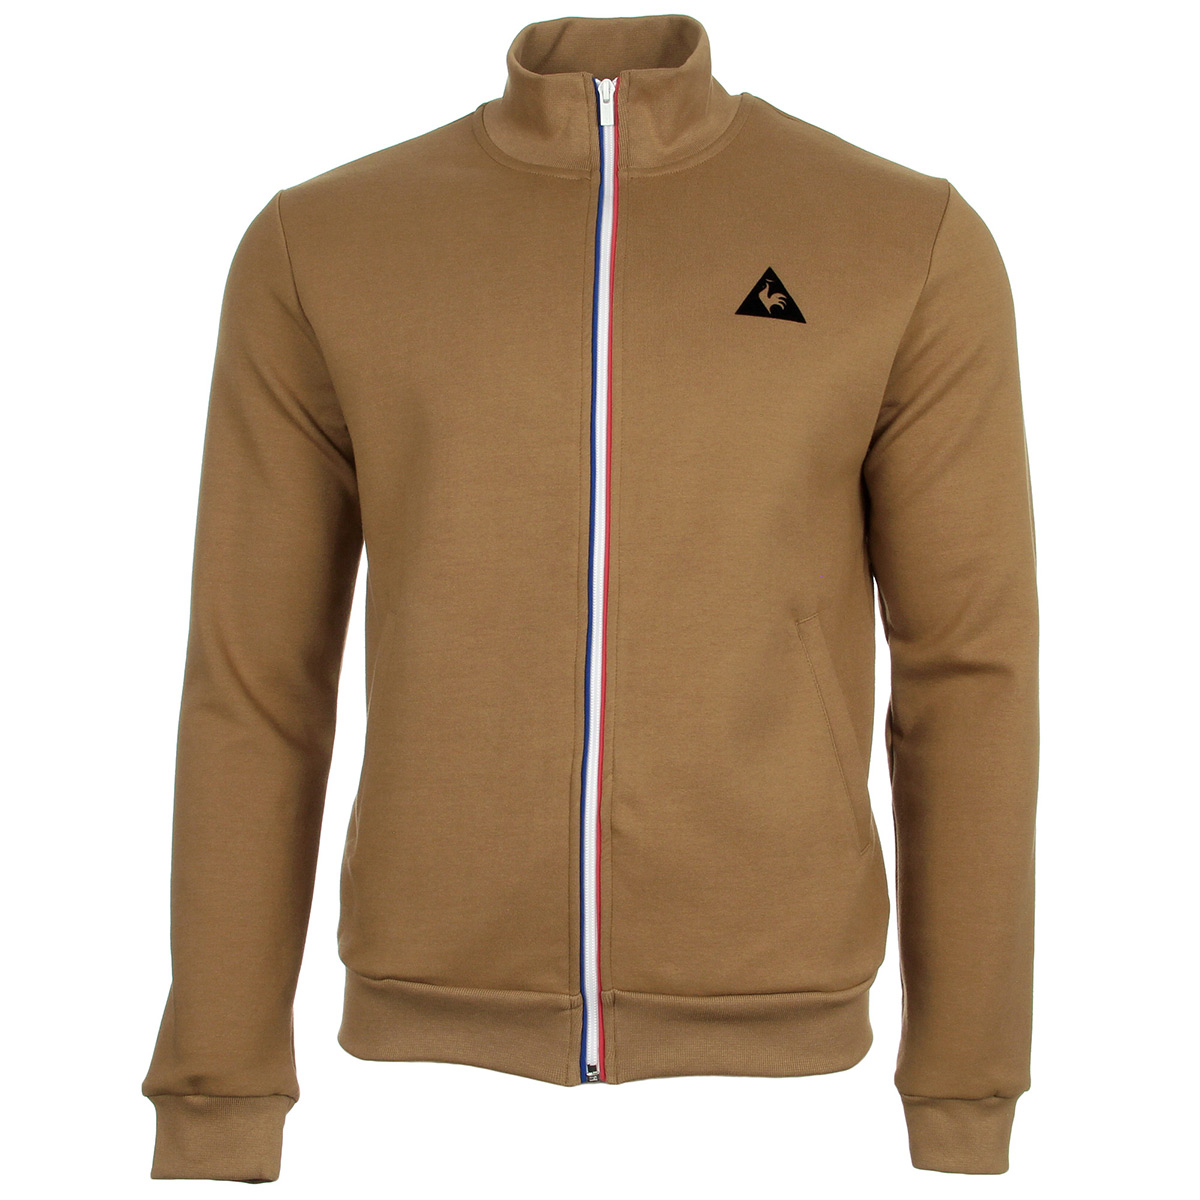 le coq sportif ess sp fz sweat m camel 1720326 vestes sport homme. Black Bedroom Furniture Sets. Home Design Ideas